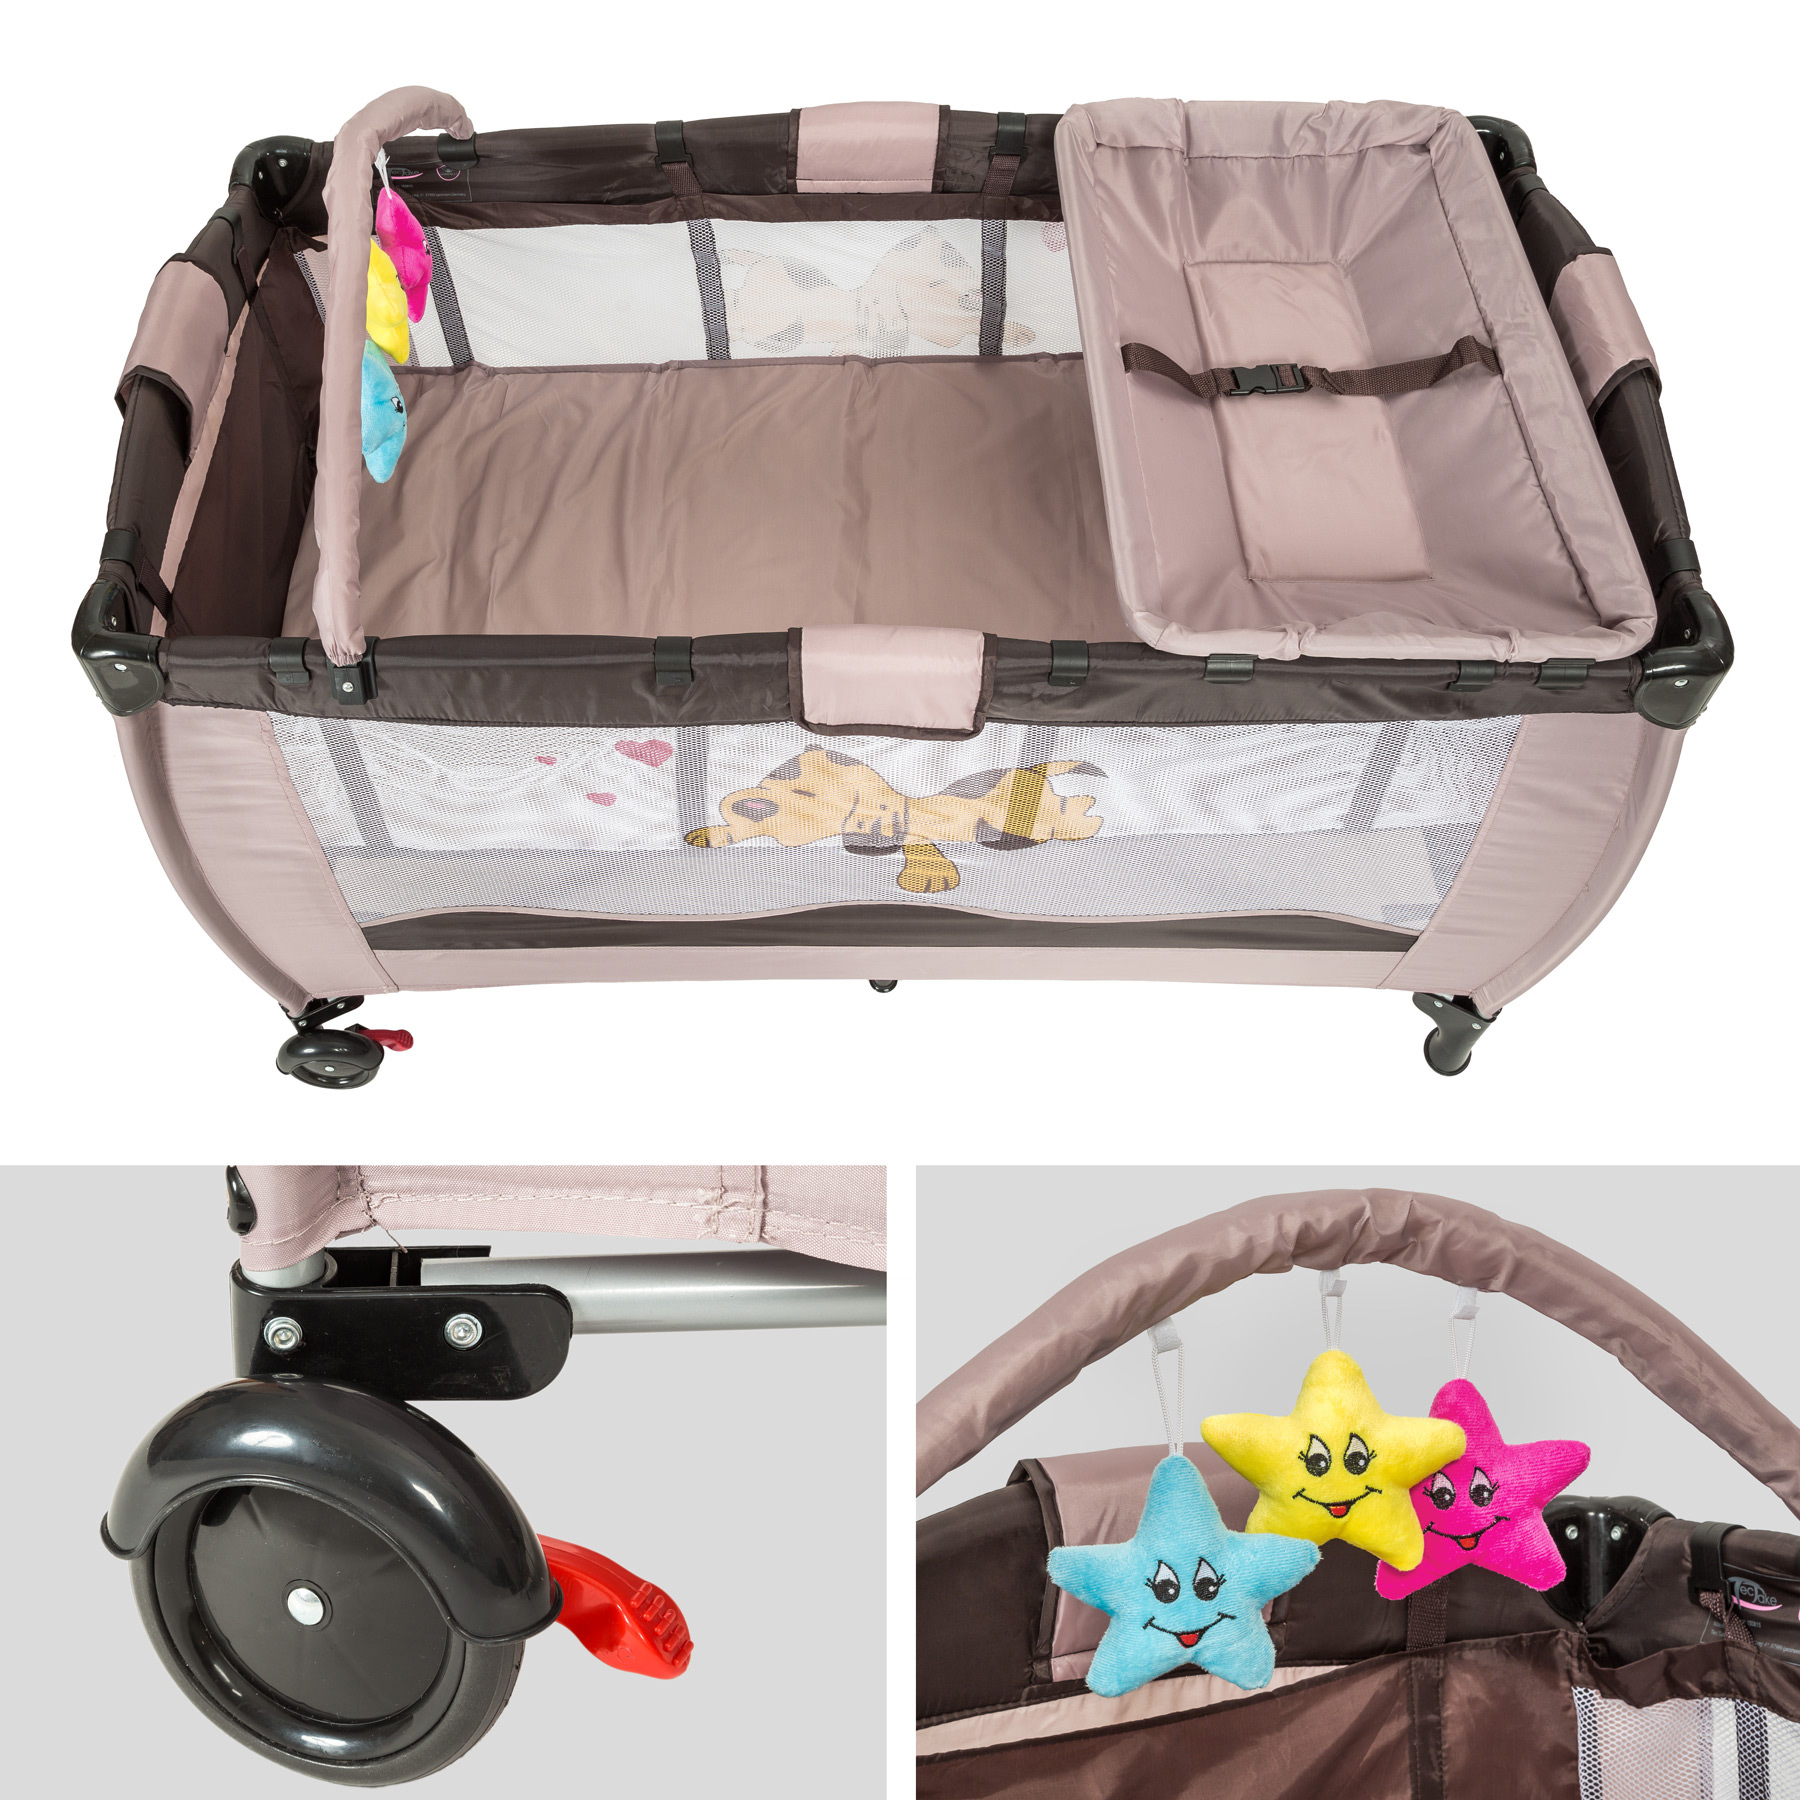 Whole Sale Portable Baby Crib Nursery Travel Folding Baby Bed Bag Infant Toddler Cradle Multifunction Storage Bag For Baby Care